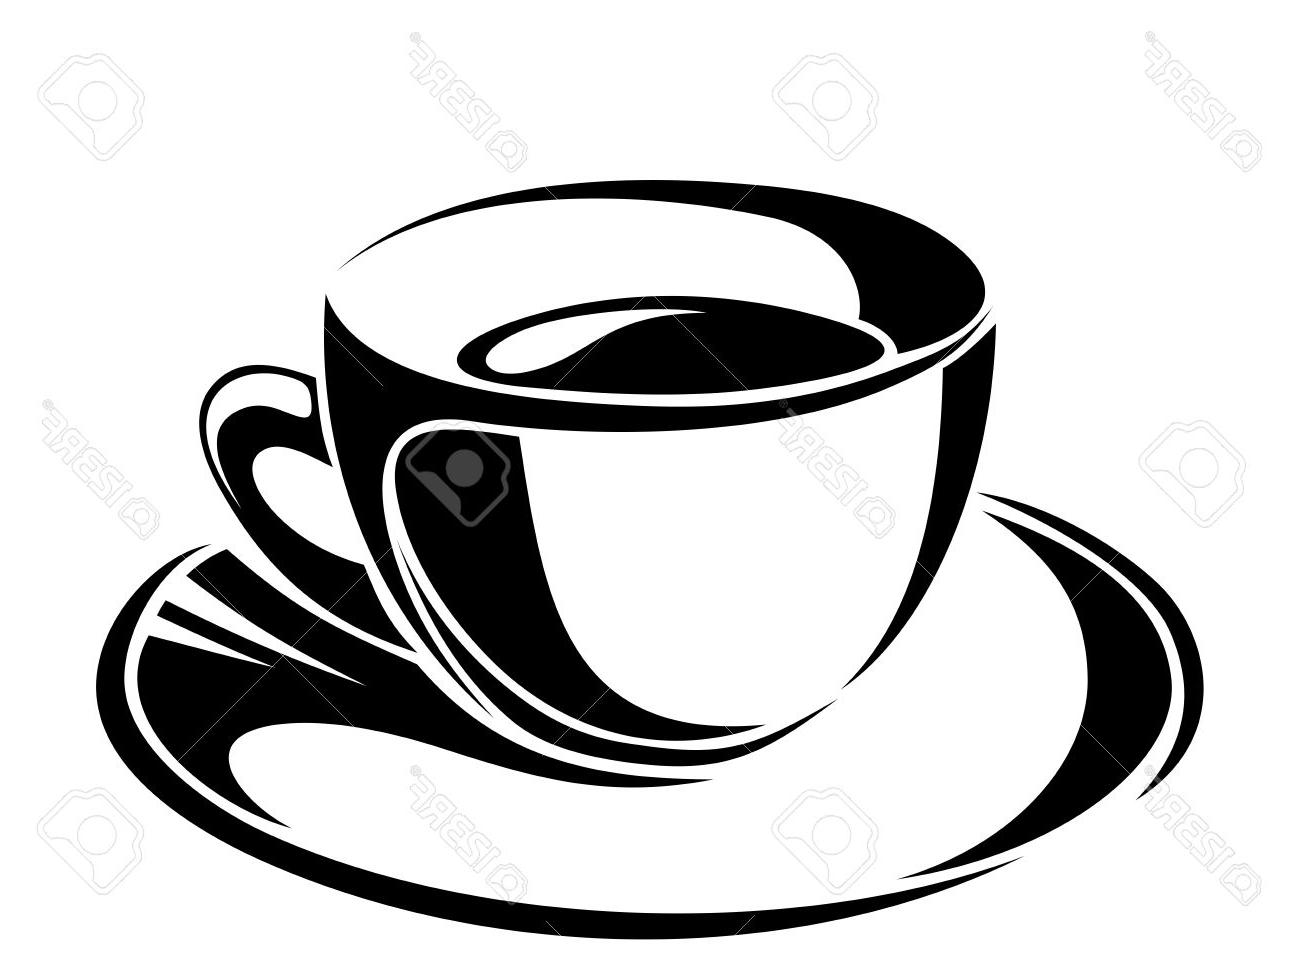 1300x975 Top 10 Cup Of Tea Vector Black Silhouettes Image